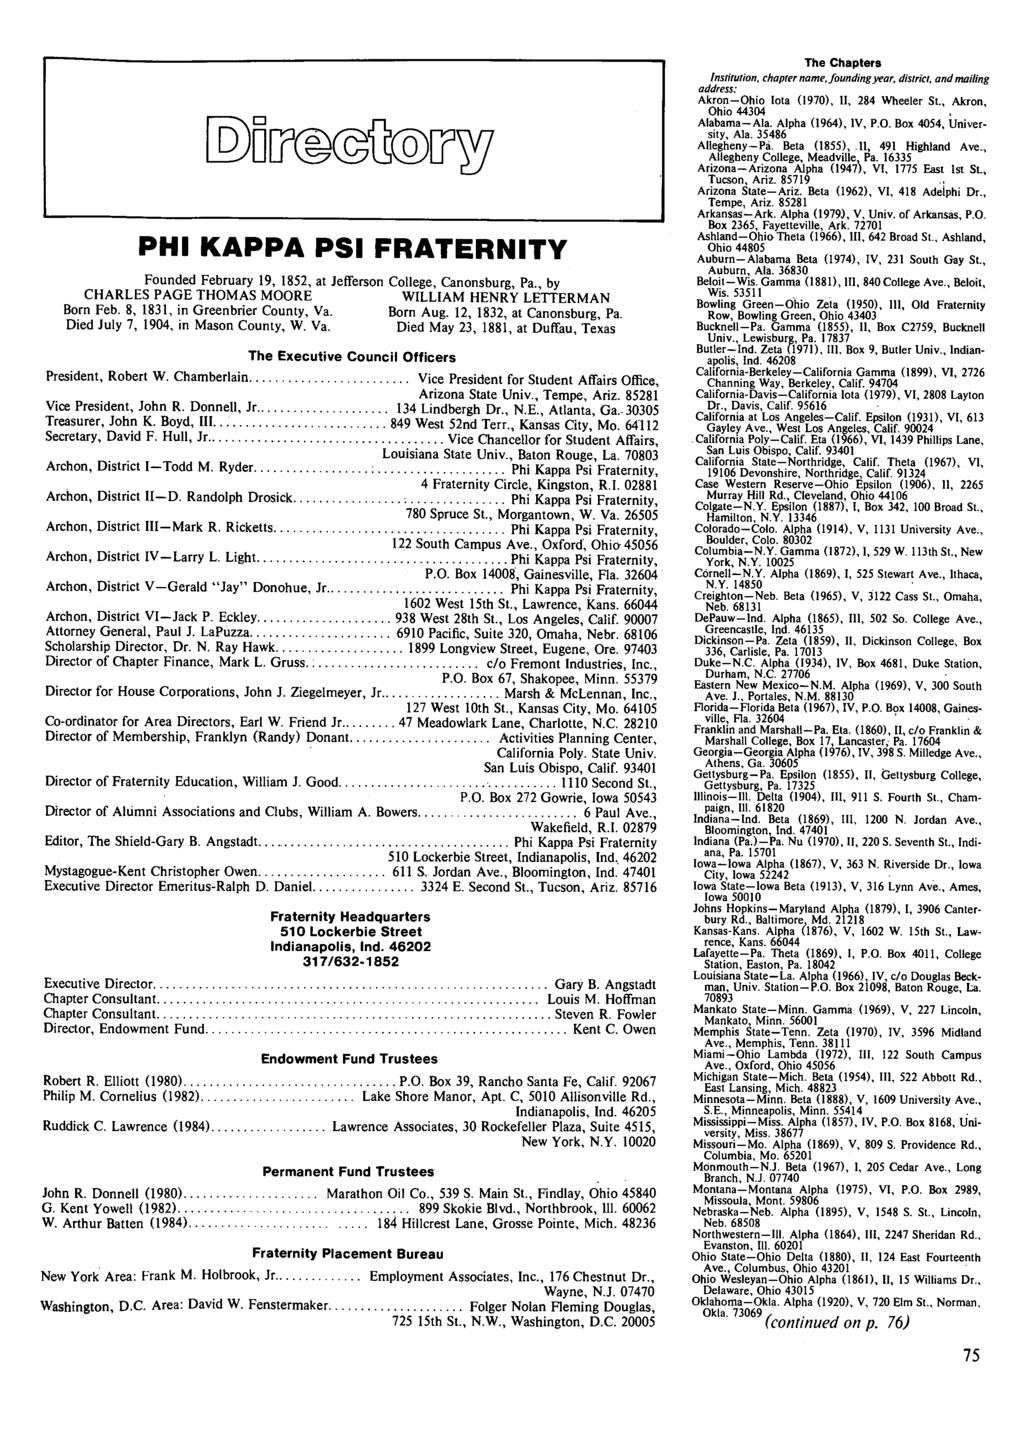 PHI KAPPA PSI FRATERNITY Founded February 19, 1852, at Jefferson College, Canonsburg, Pa., by CHARLES PAGE THOMAS MOORE WILLIAM HENRY LETTERMAN Born Feb. 8, 1831, in Greenbrier County, Va. Born Aug.